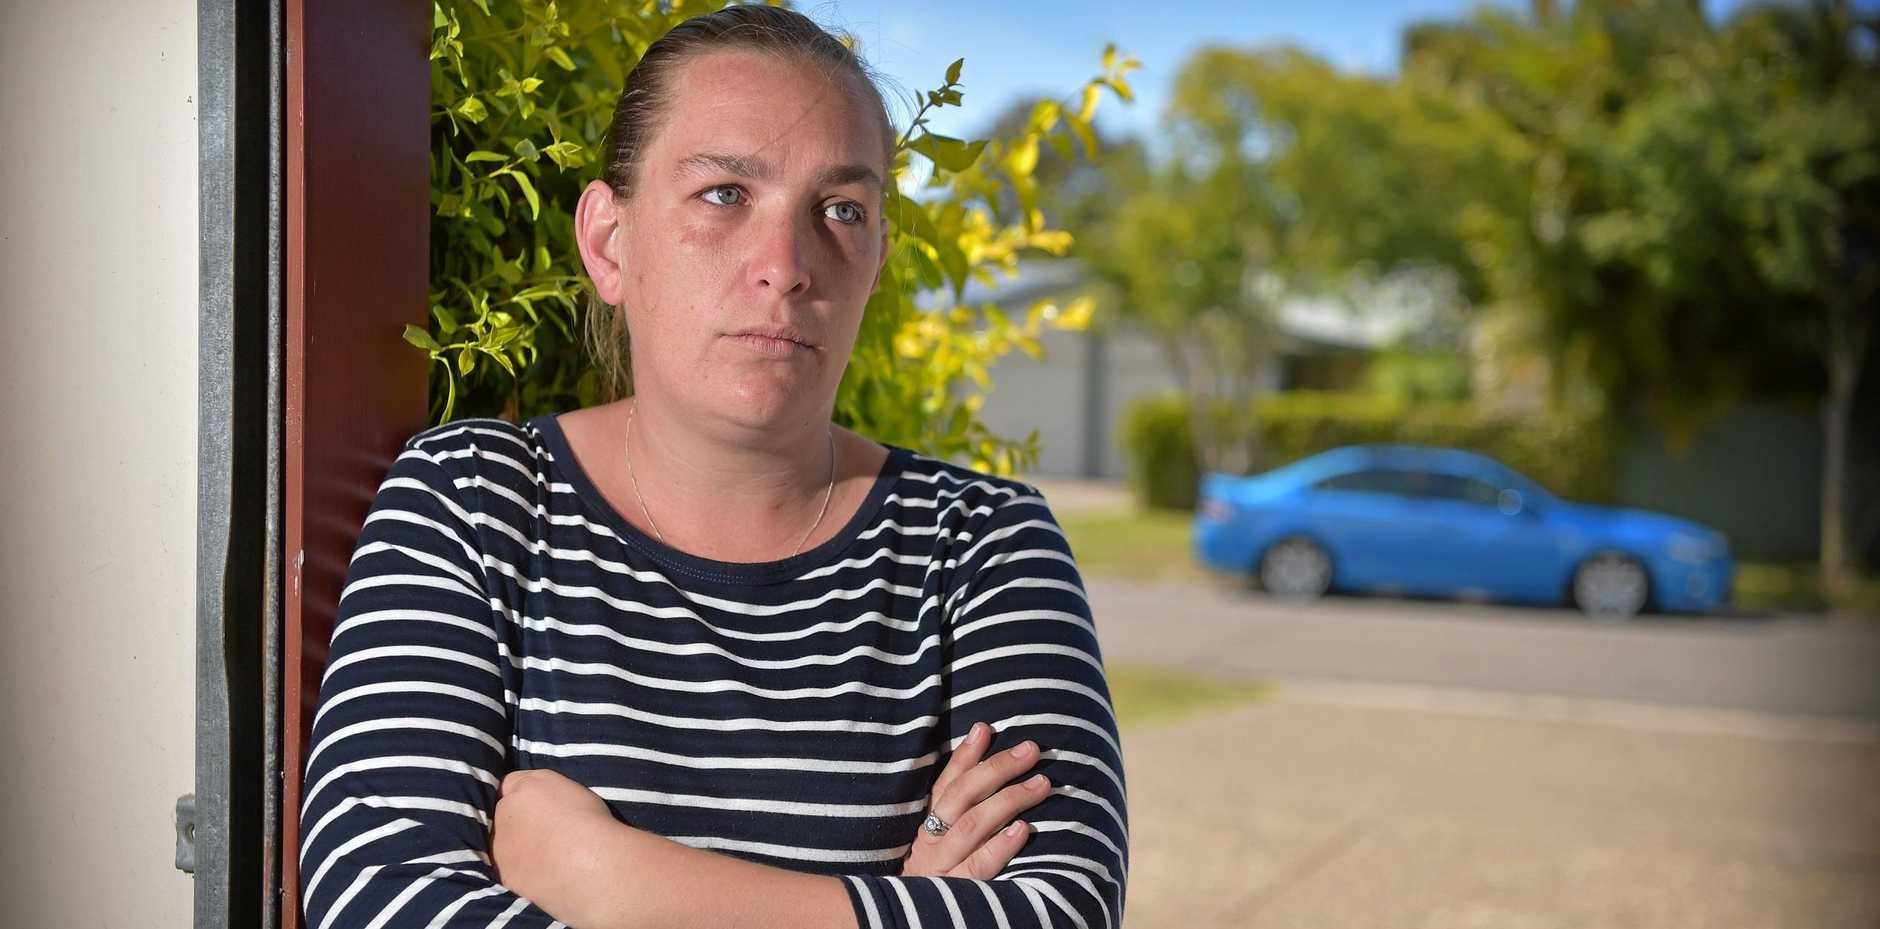 BUMPY ROAD: Mother-of-two Bianca Morley was car jacked in broad daylight on one of Nambour's main streets. She is desperate to get her red Mazda 3 back after thieves sped off.